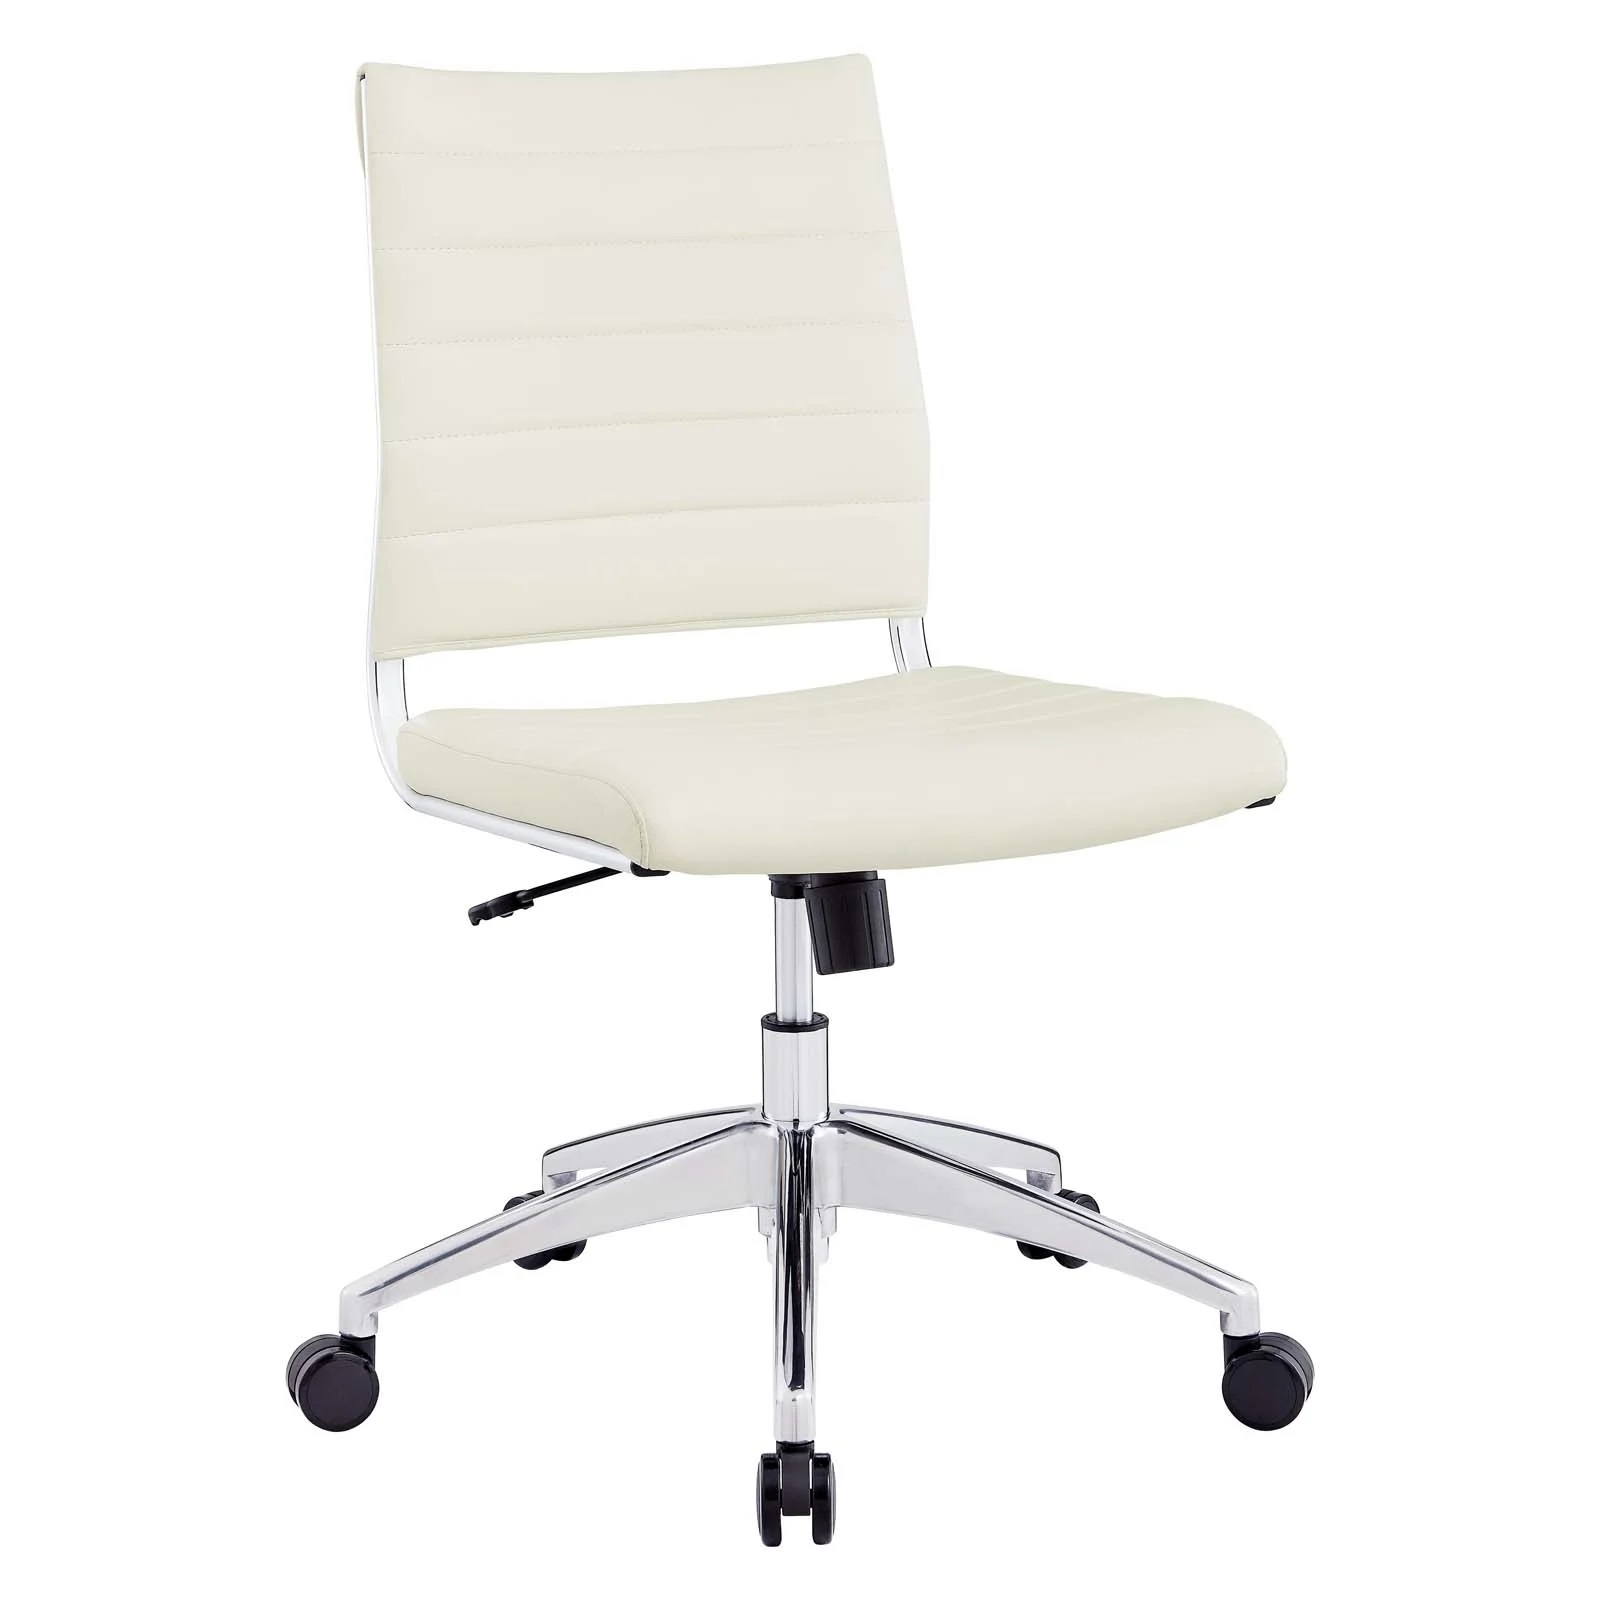 Armless Mid Back Office Chair in White